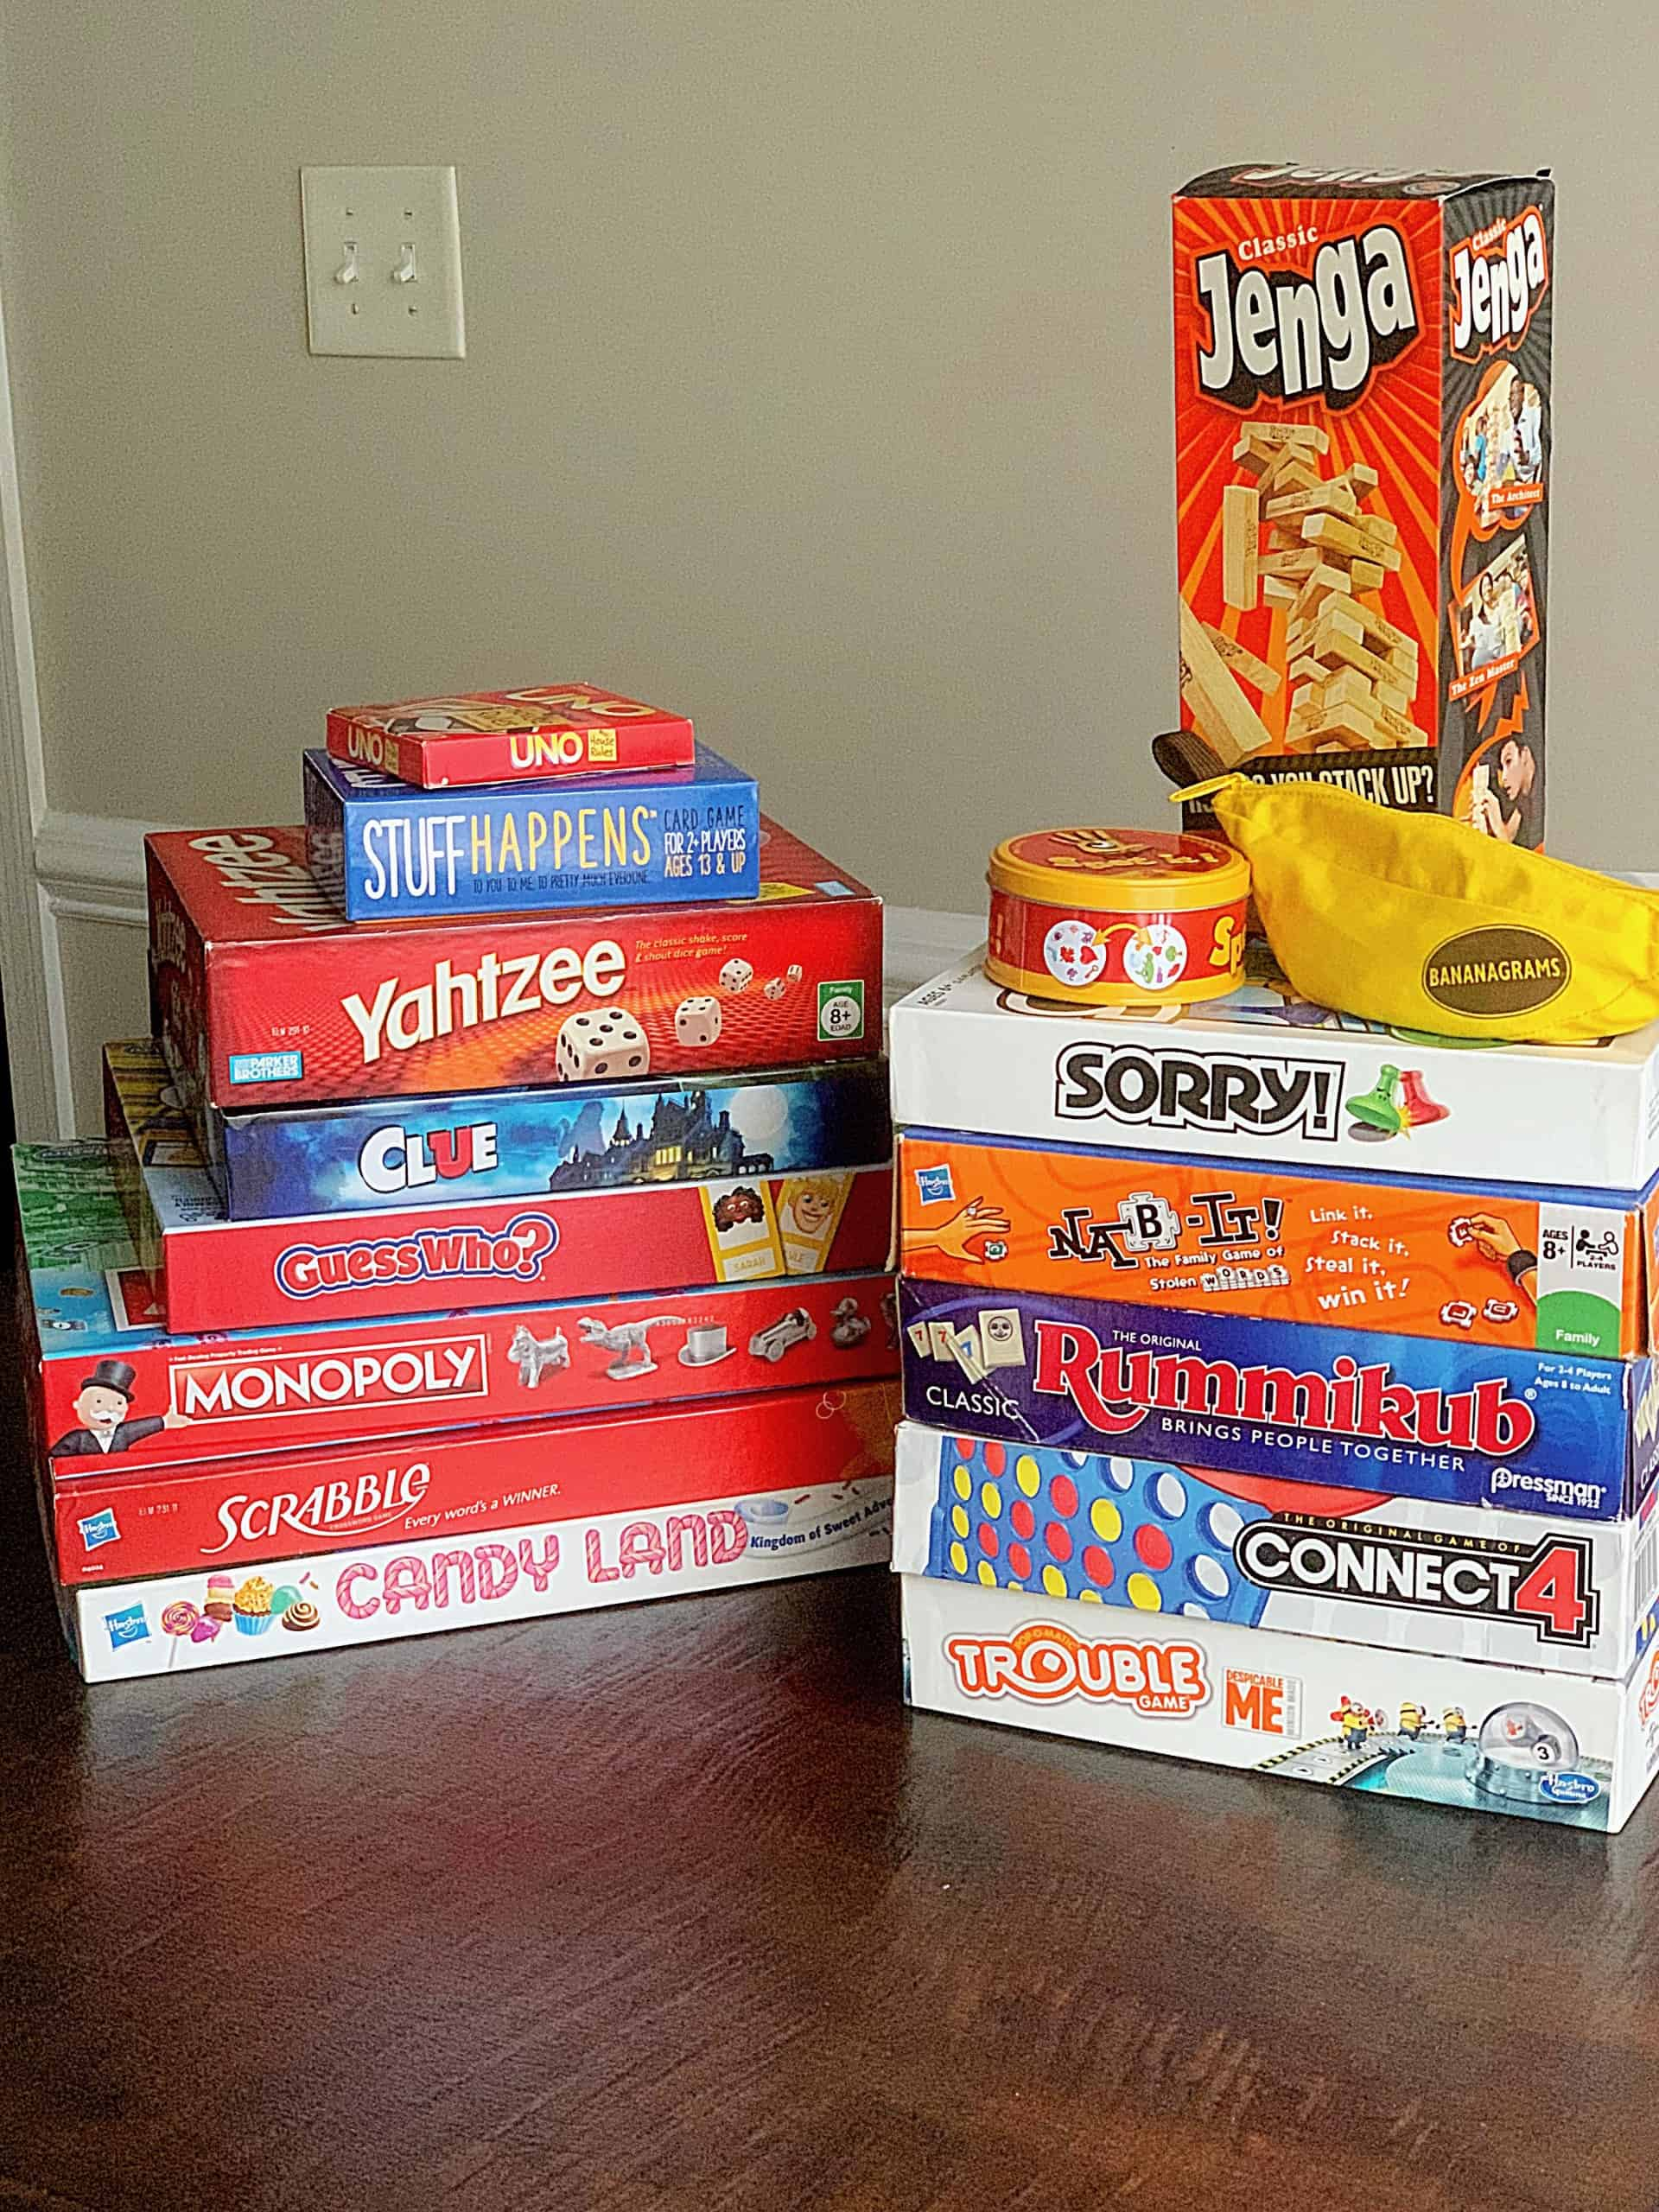 Your family will love my list of 25 Best Board Games for Family Night! These easy family board games, card games, and hands-on games are fun for all ages and perfect for playing on a weekly family game night or during the holidays with family and friends. #boardgames #familynight #familygamenight #familygames